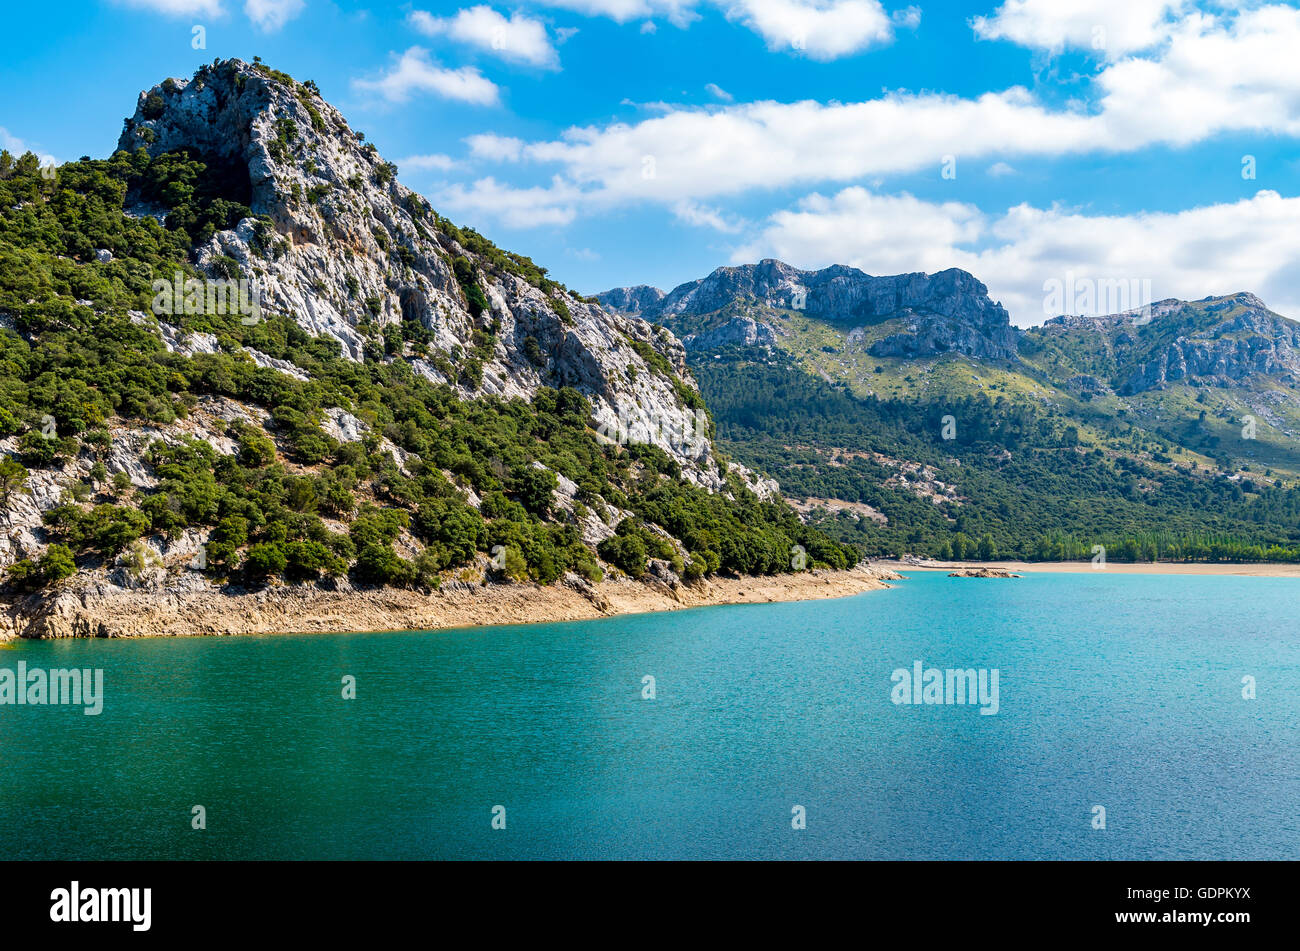 beautiful mountain lake Panta de Gorg Blau, Mallorca, Spain - Stock Image